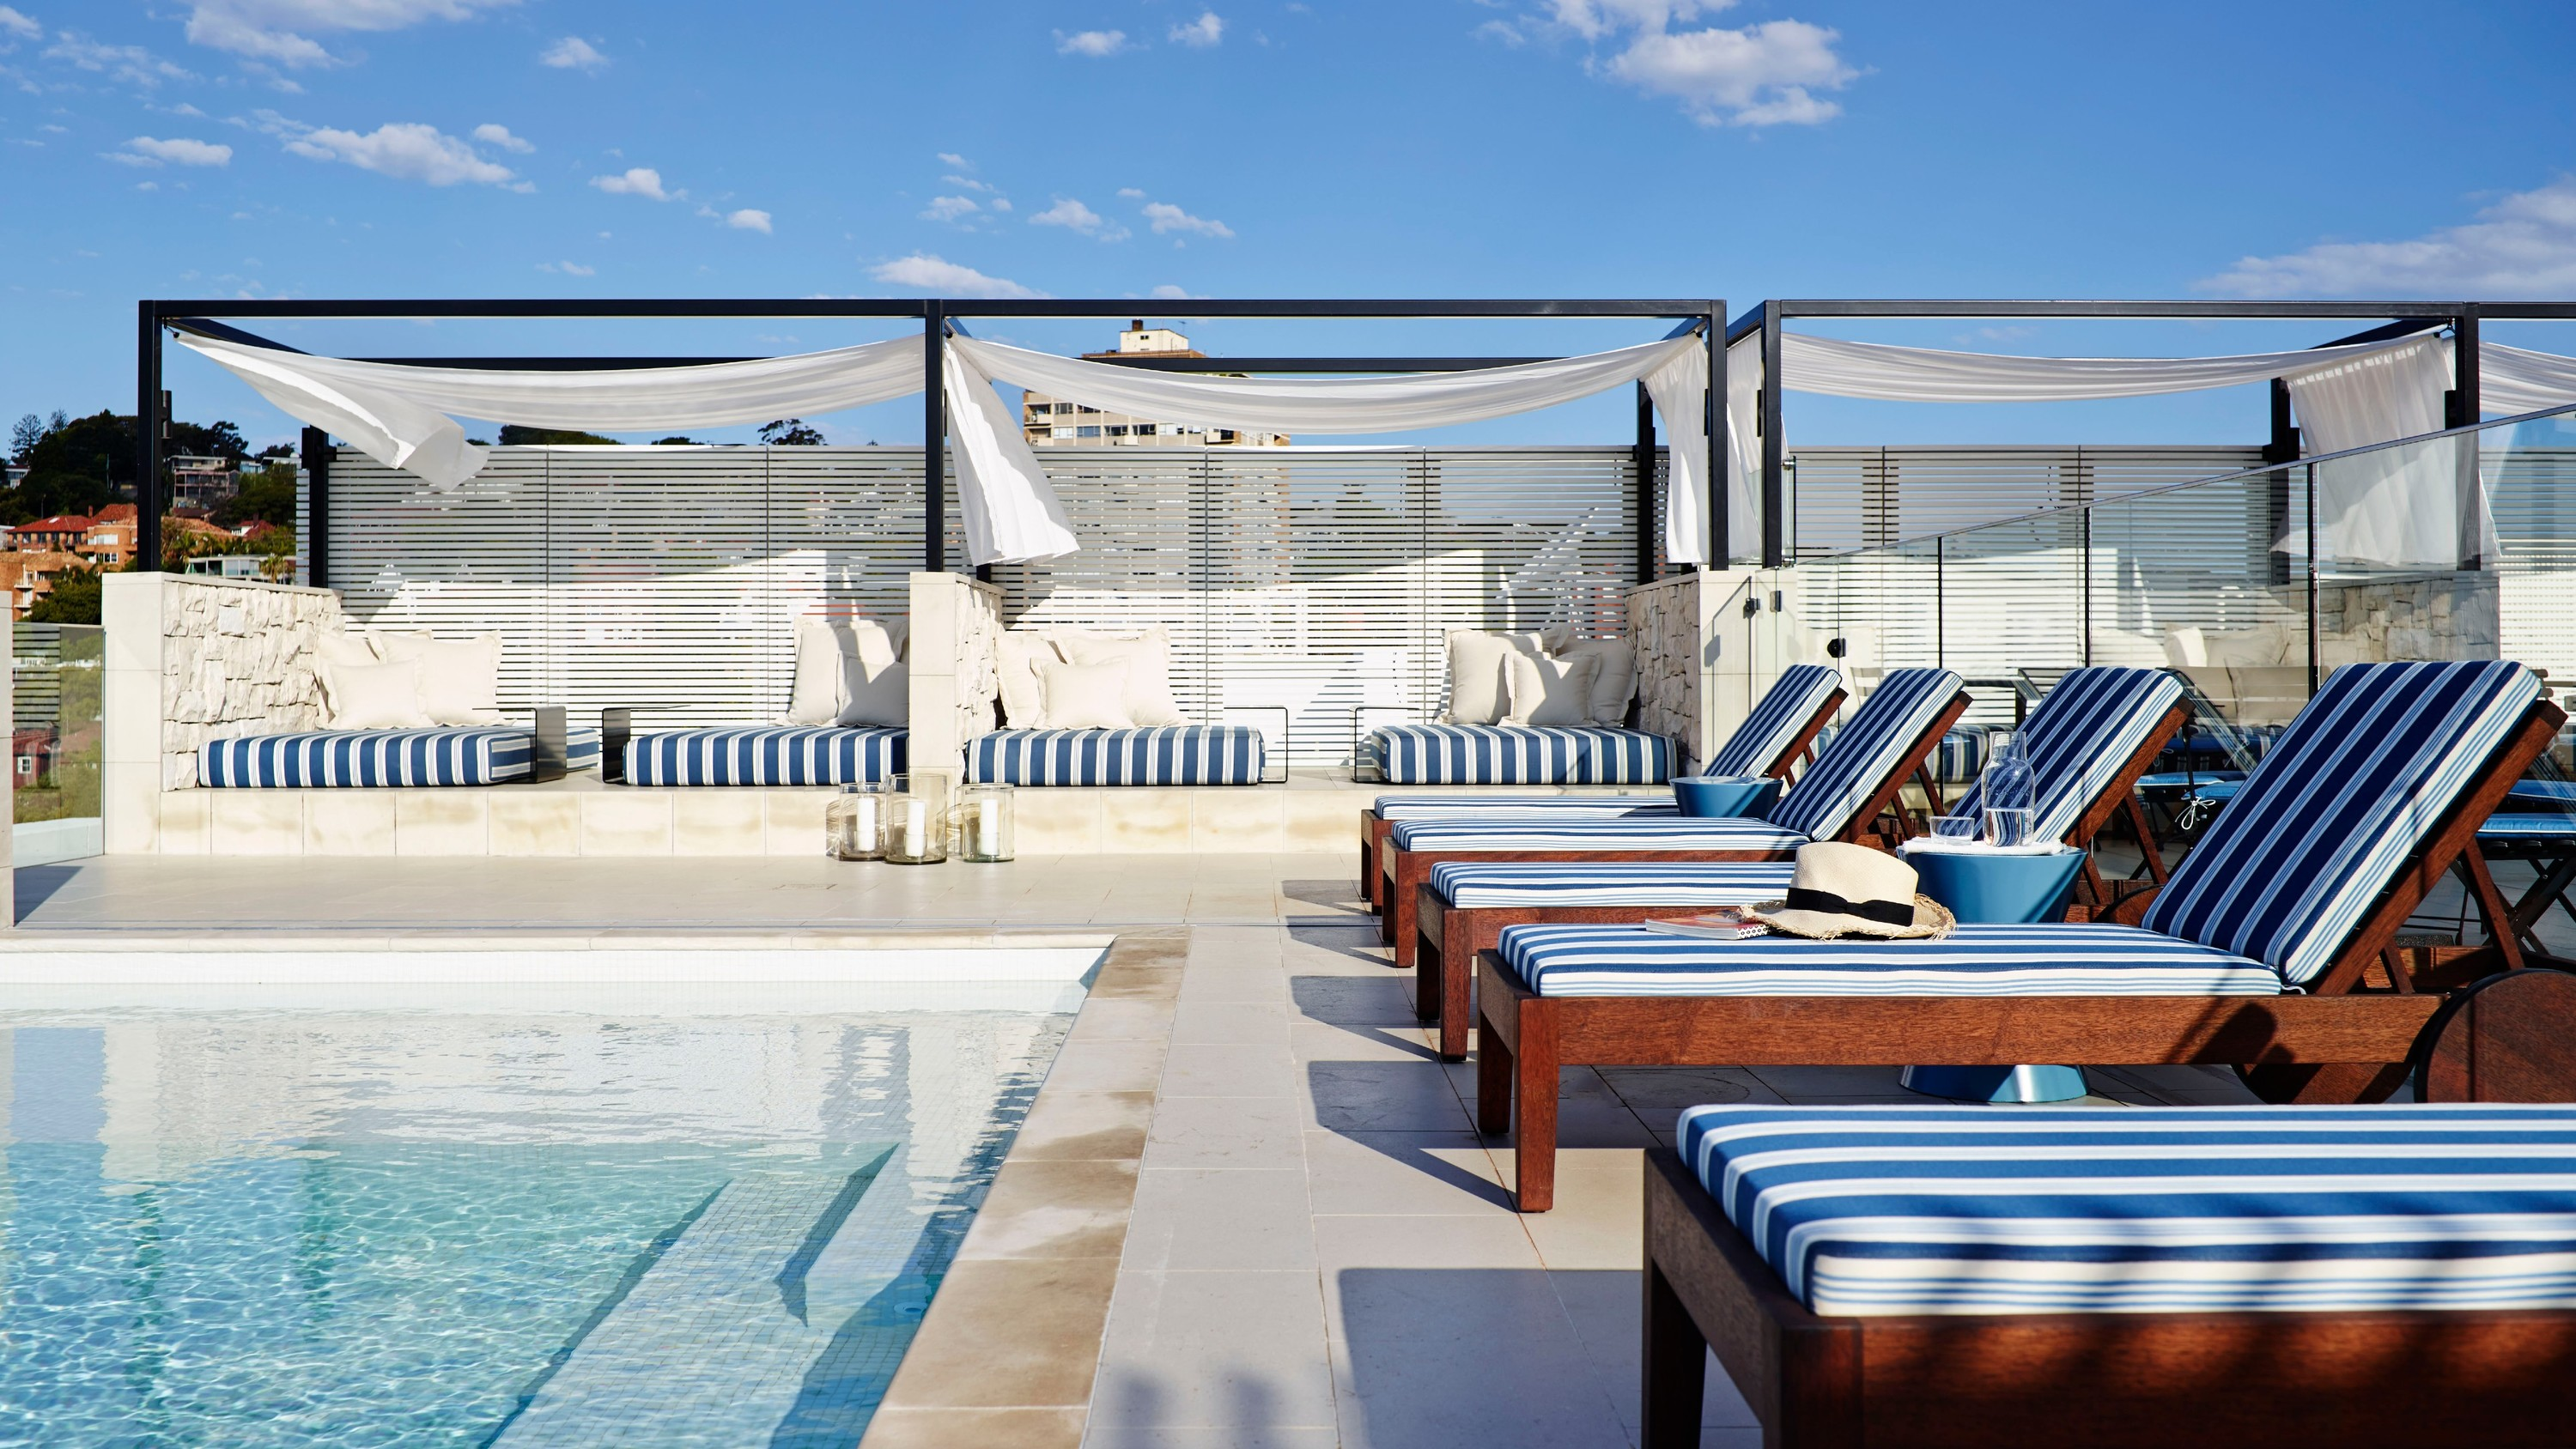 Rooftop pool with loungers next to it